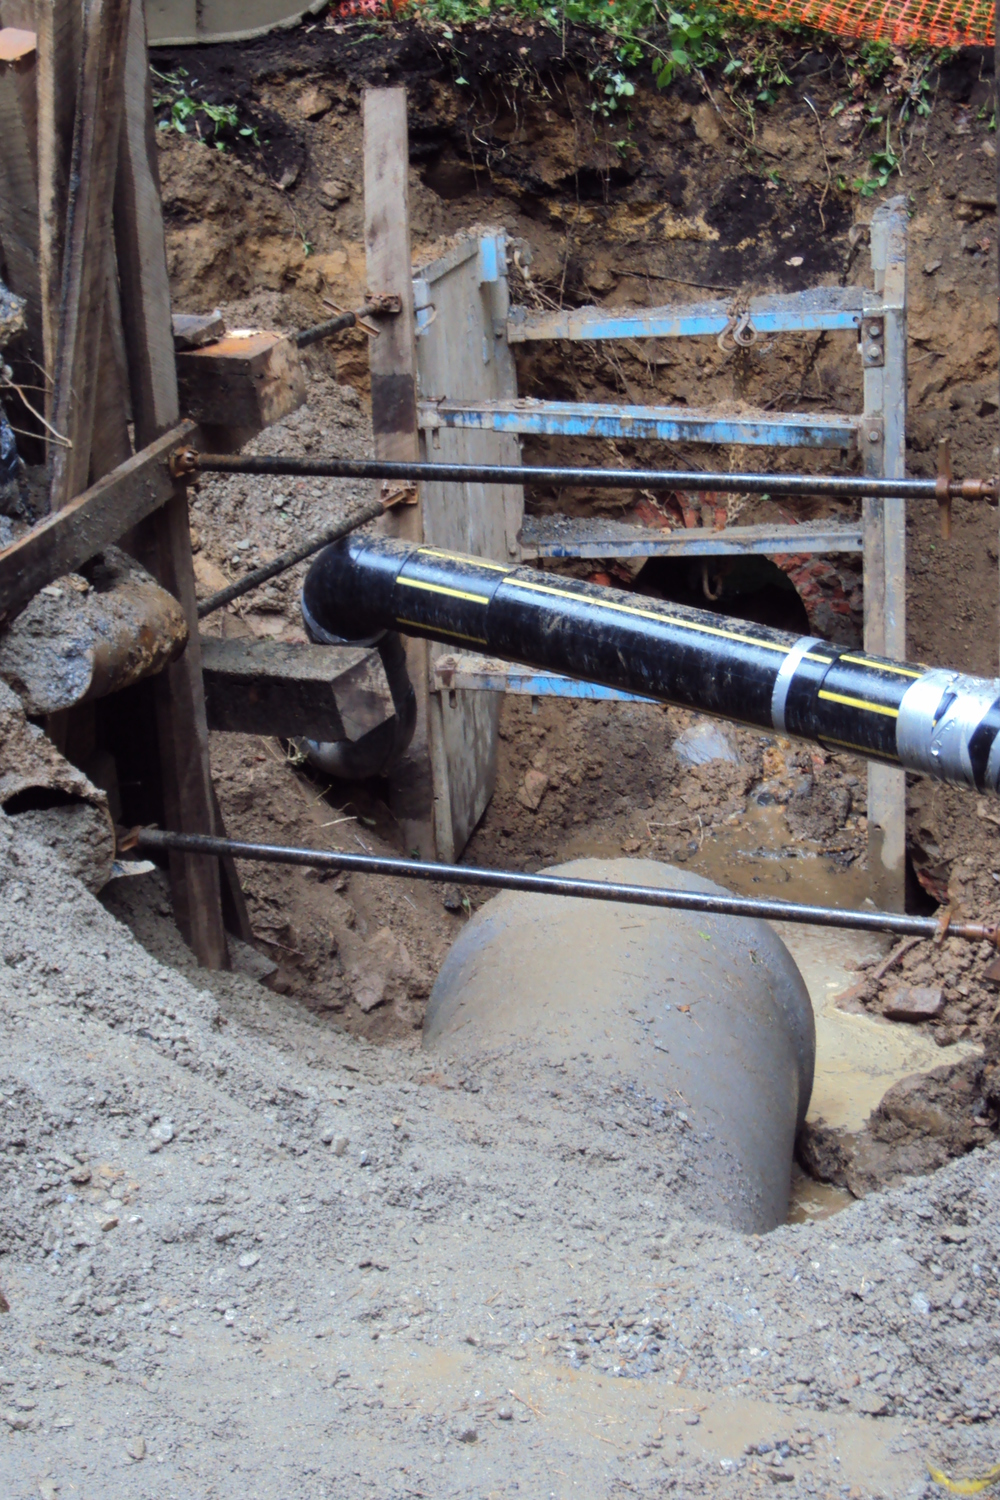 New concrete pipe is carefully installed under existing utility lines